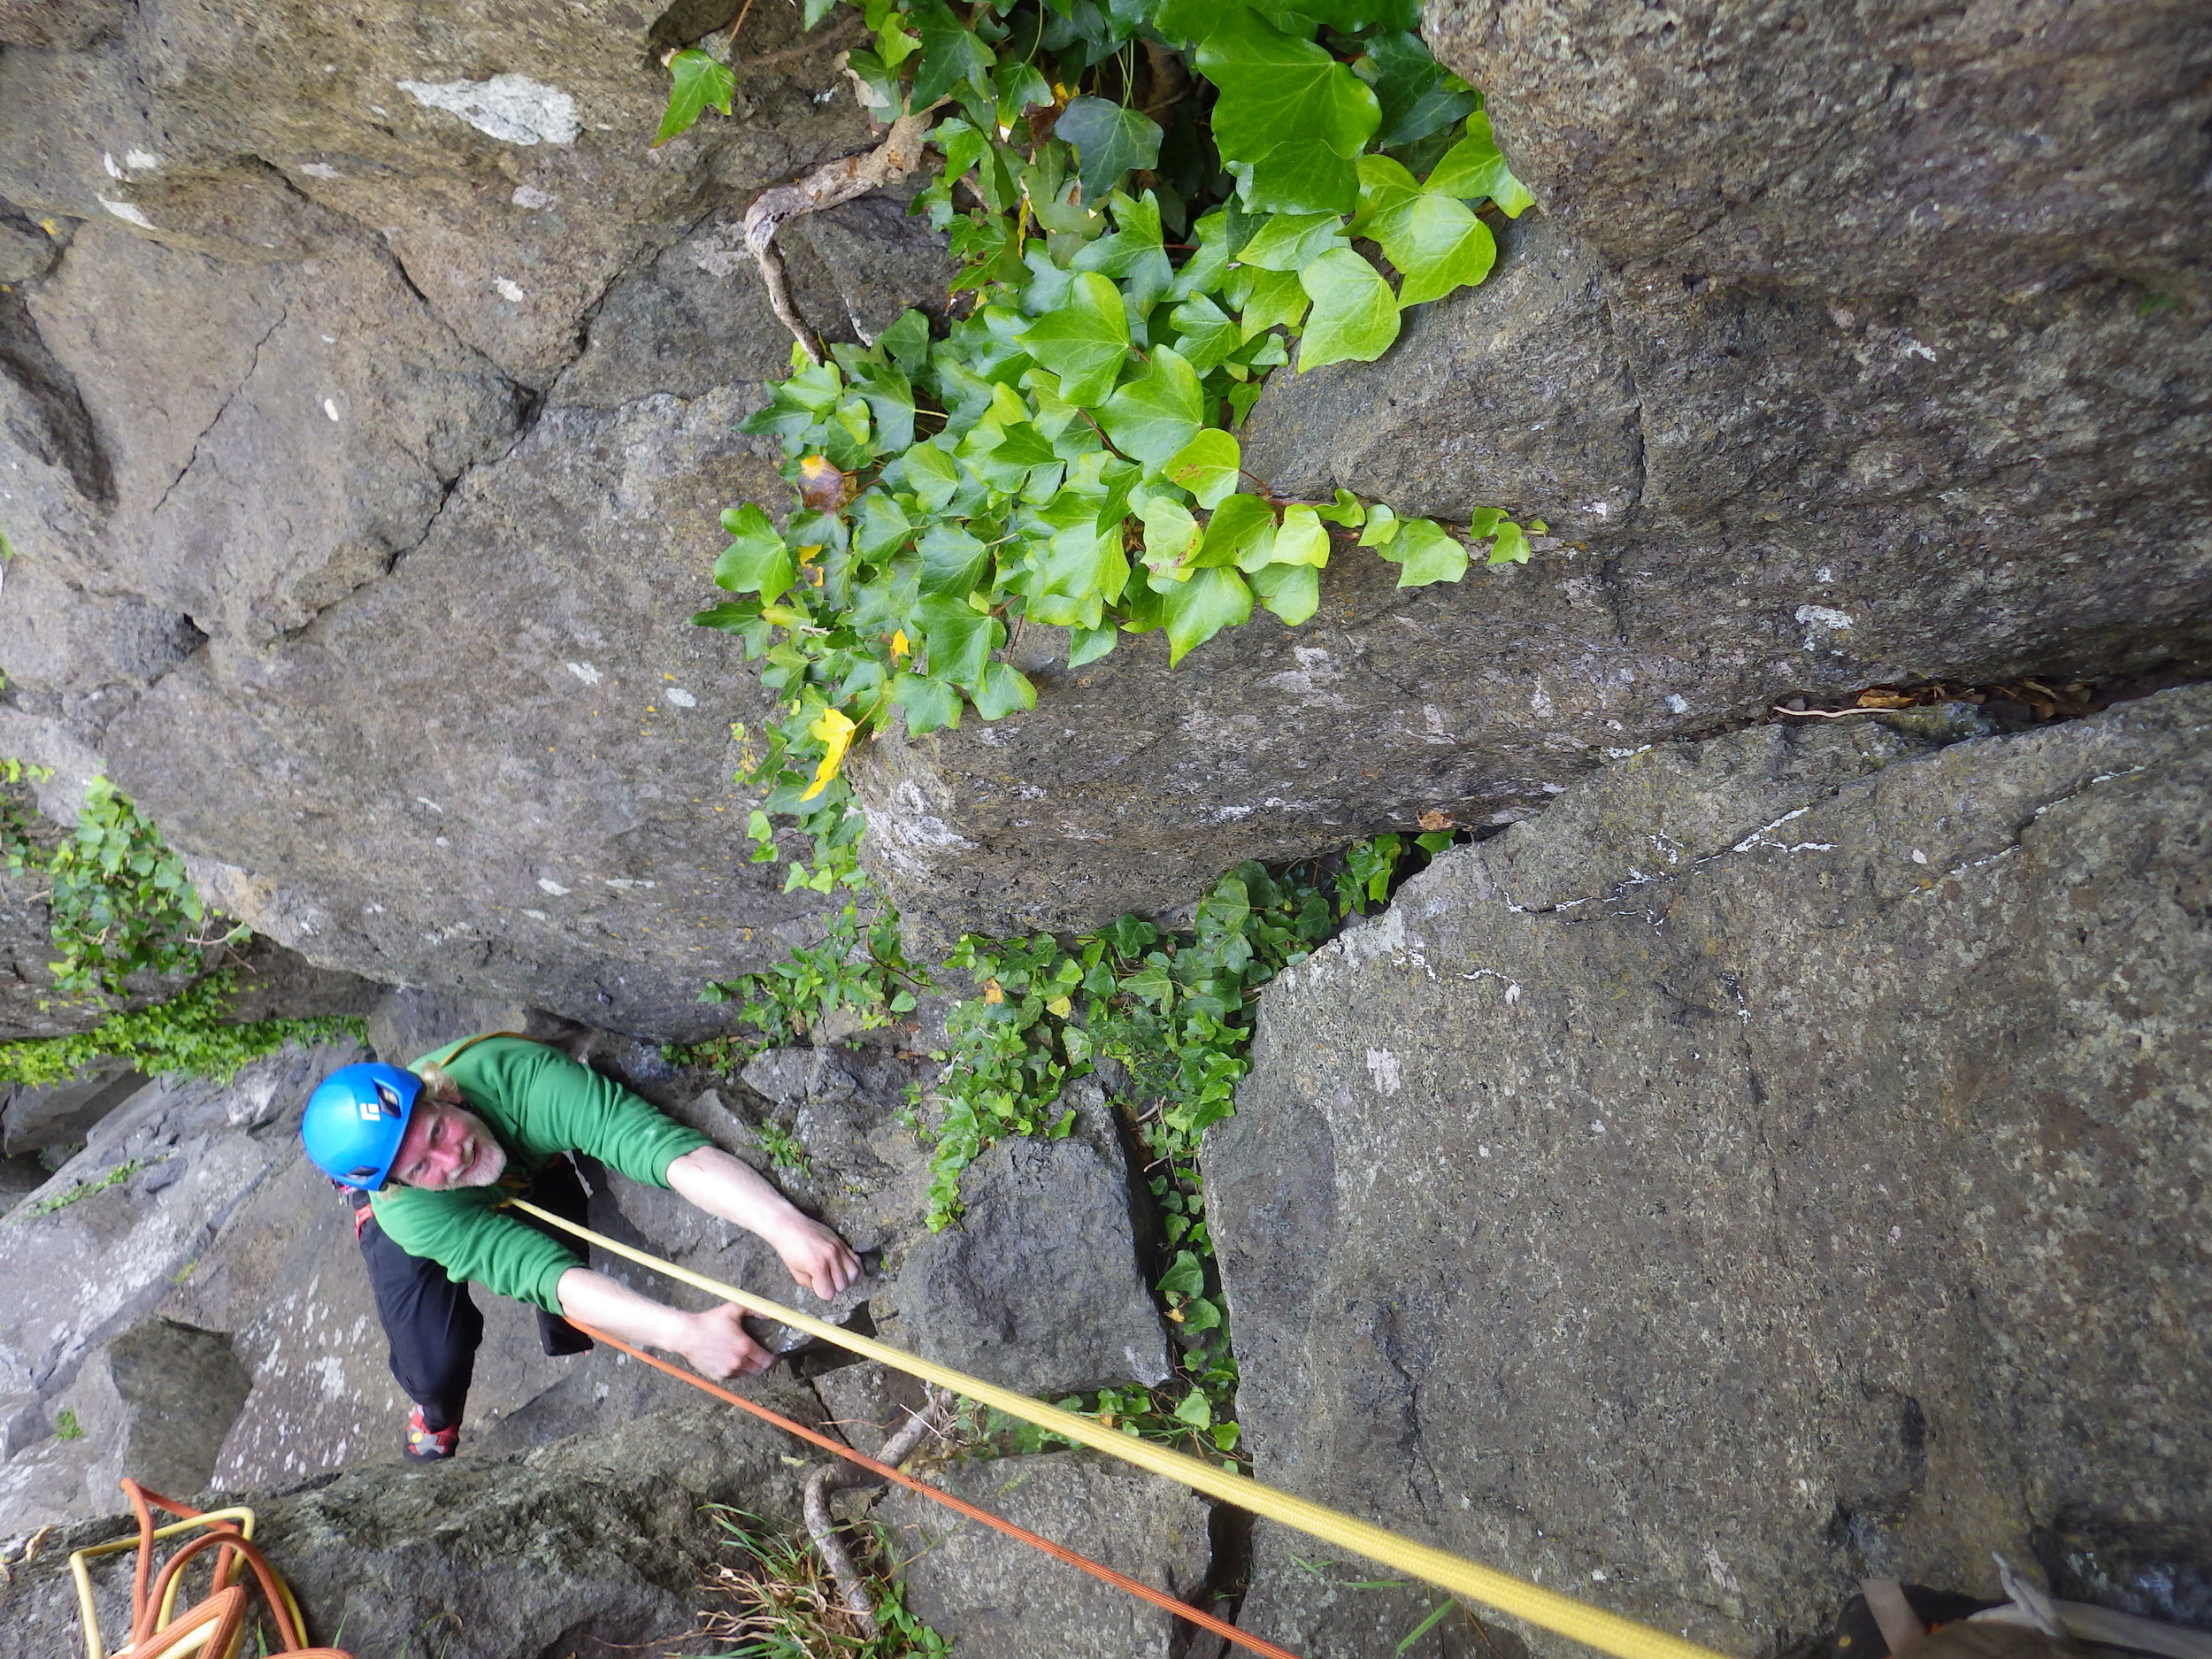 Shadrach, VS 5a, Tremadog, North Wales